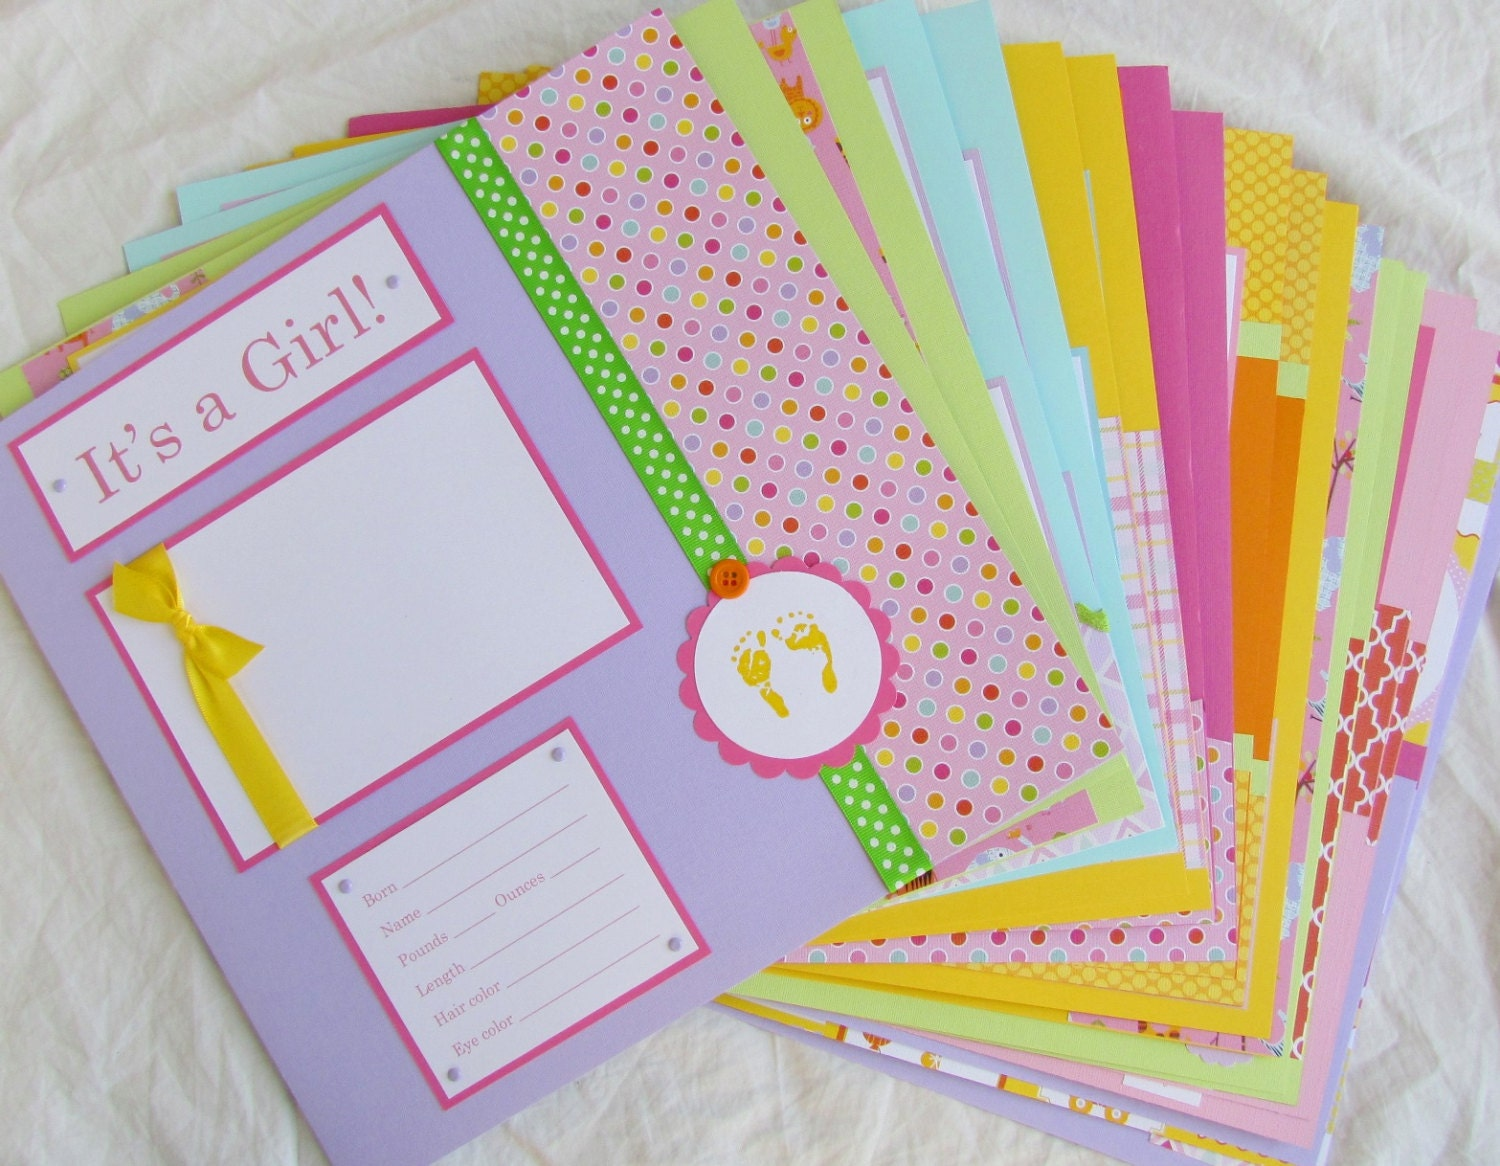 Premade 12x12 Scrapbook Pages 20 BABY GIRL Layouts For 12x12